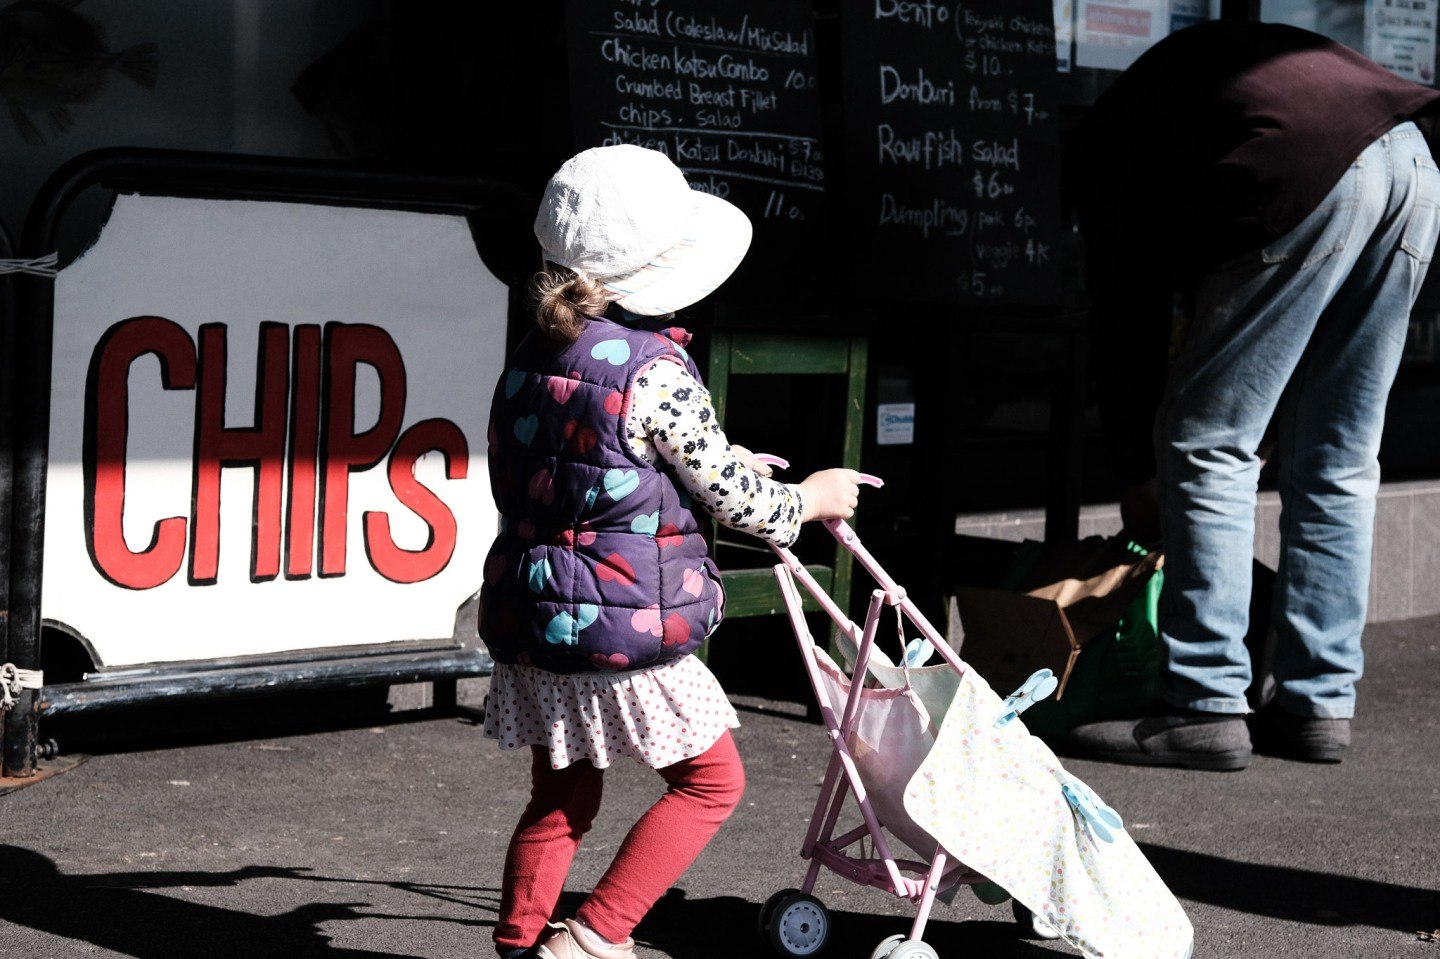 Little girl walking past a fish chips shop